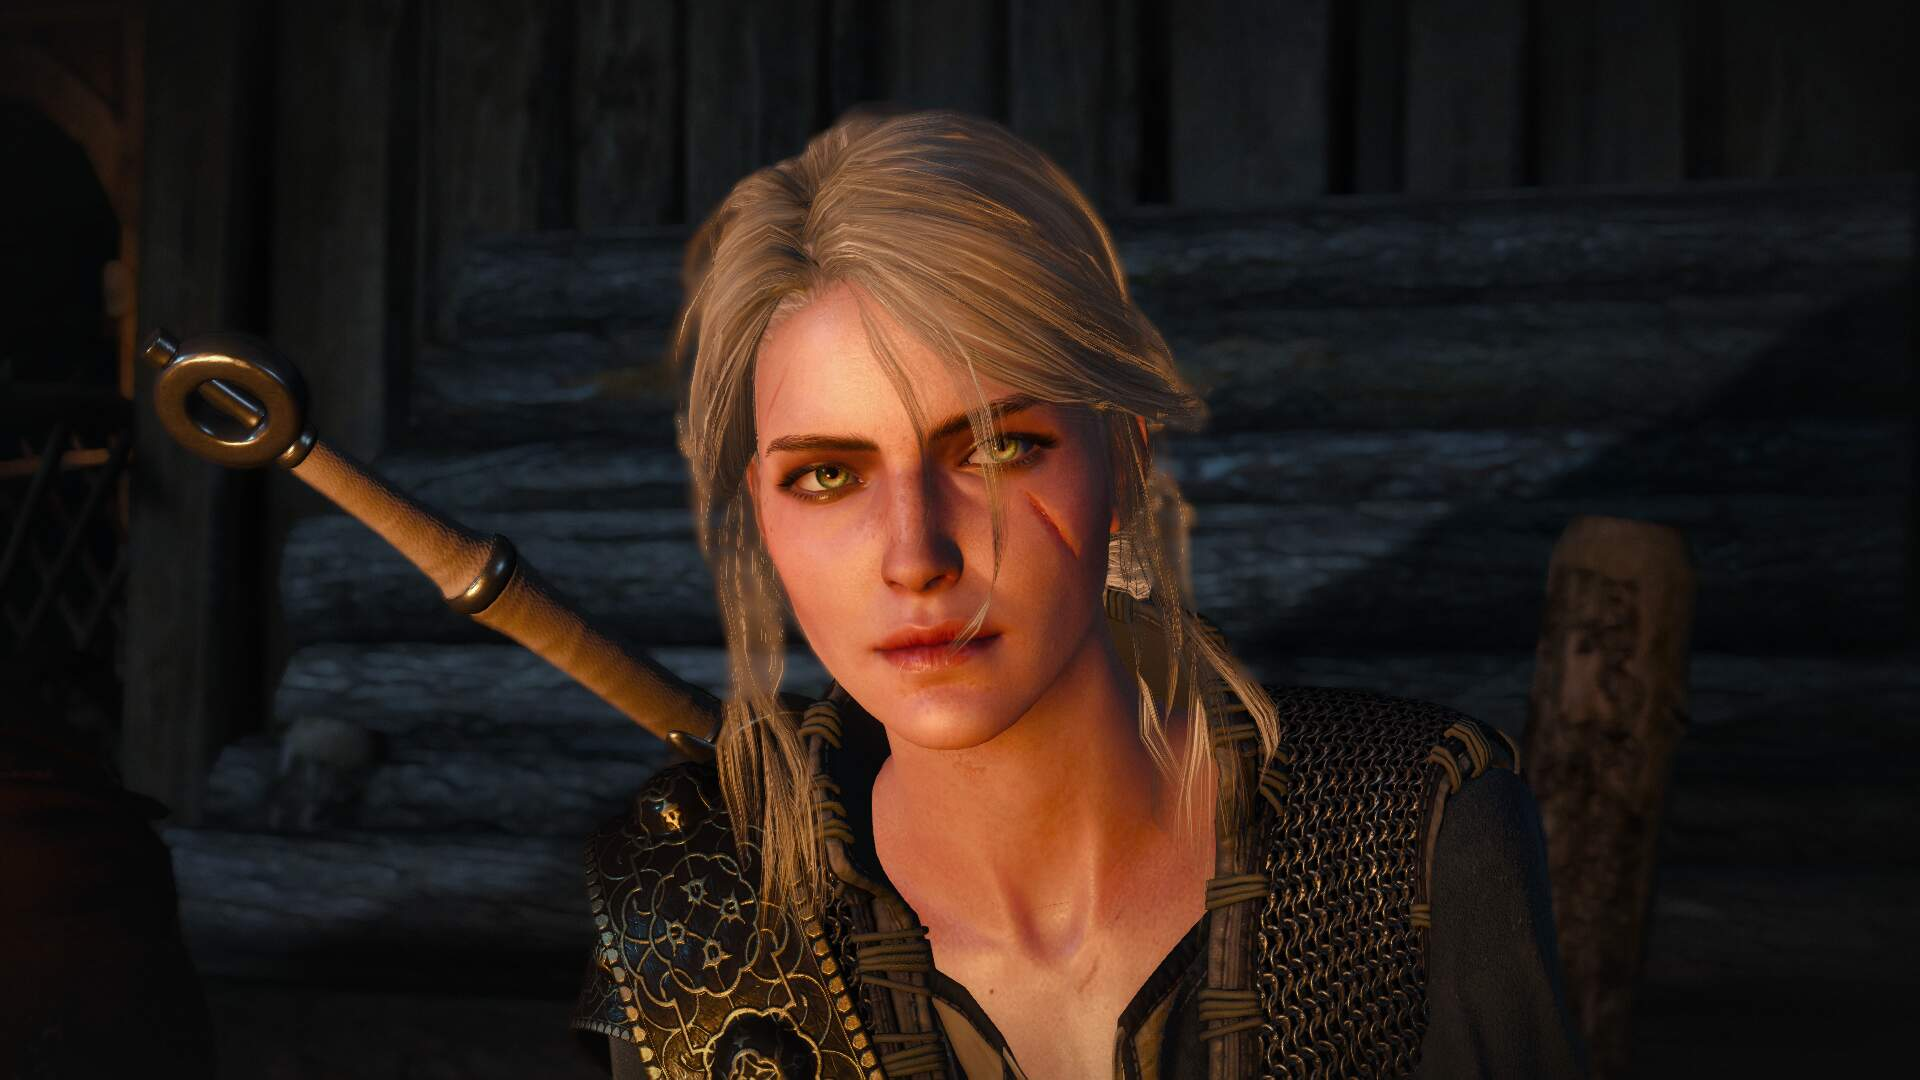 Witcher 4 Should Focus on Ciri, According to Geralt's Voice Actor